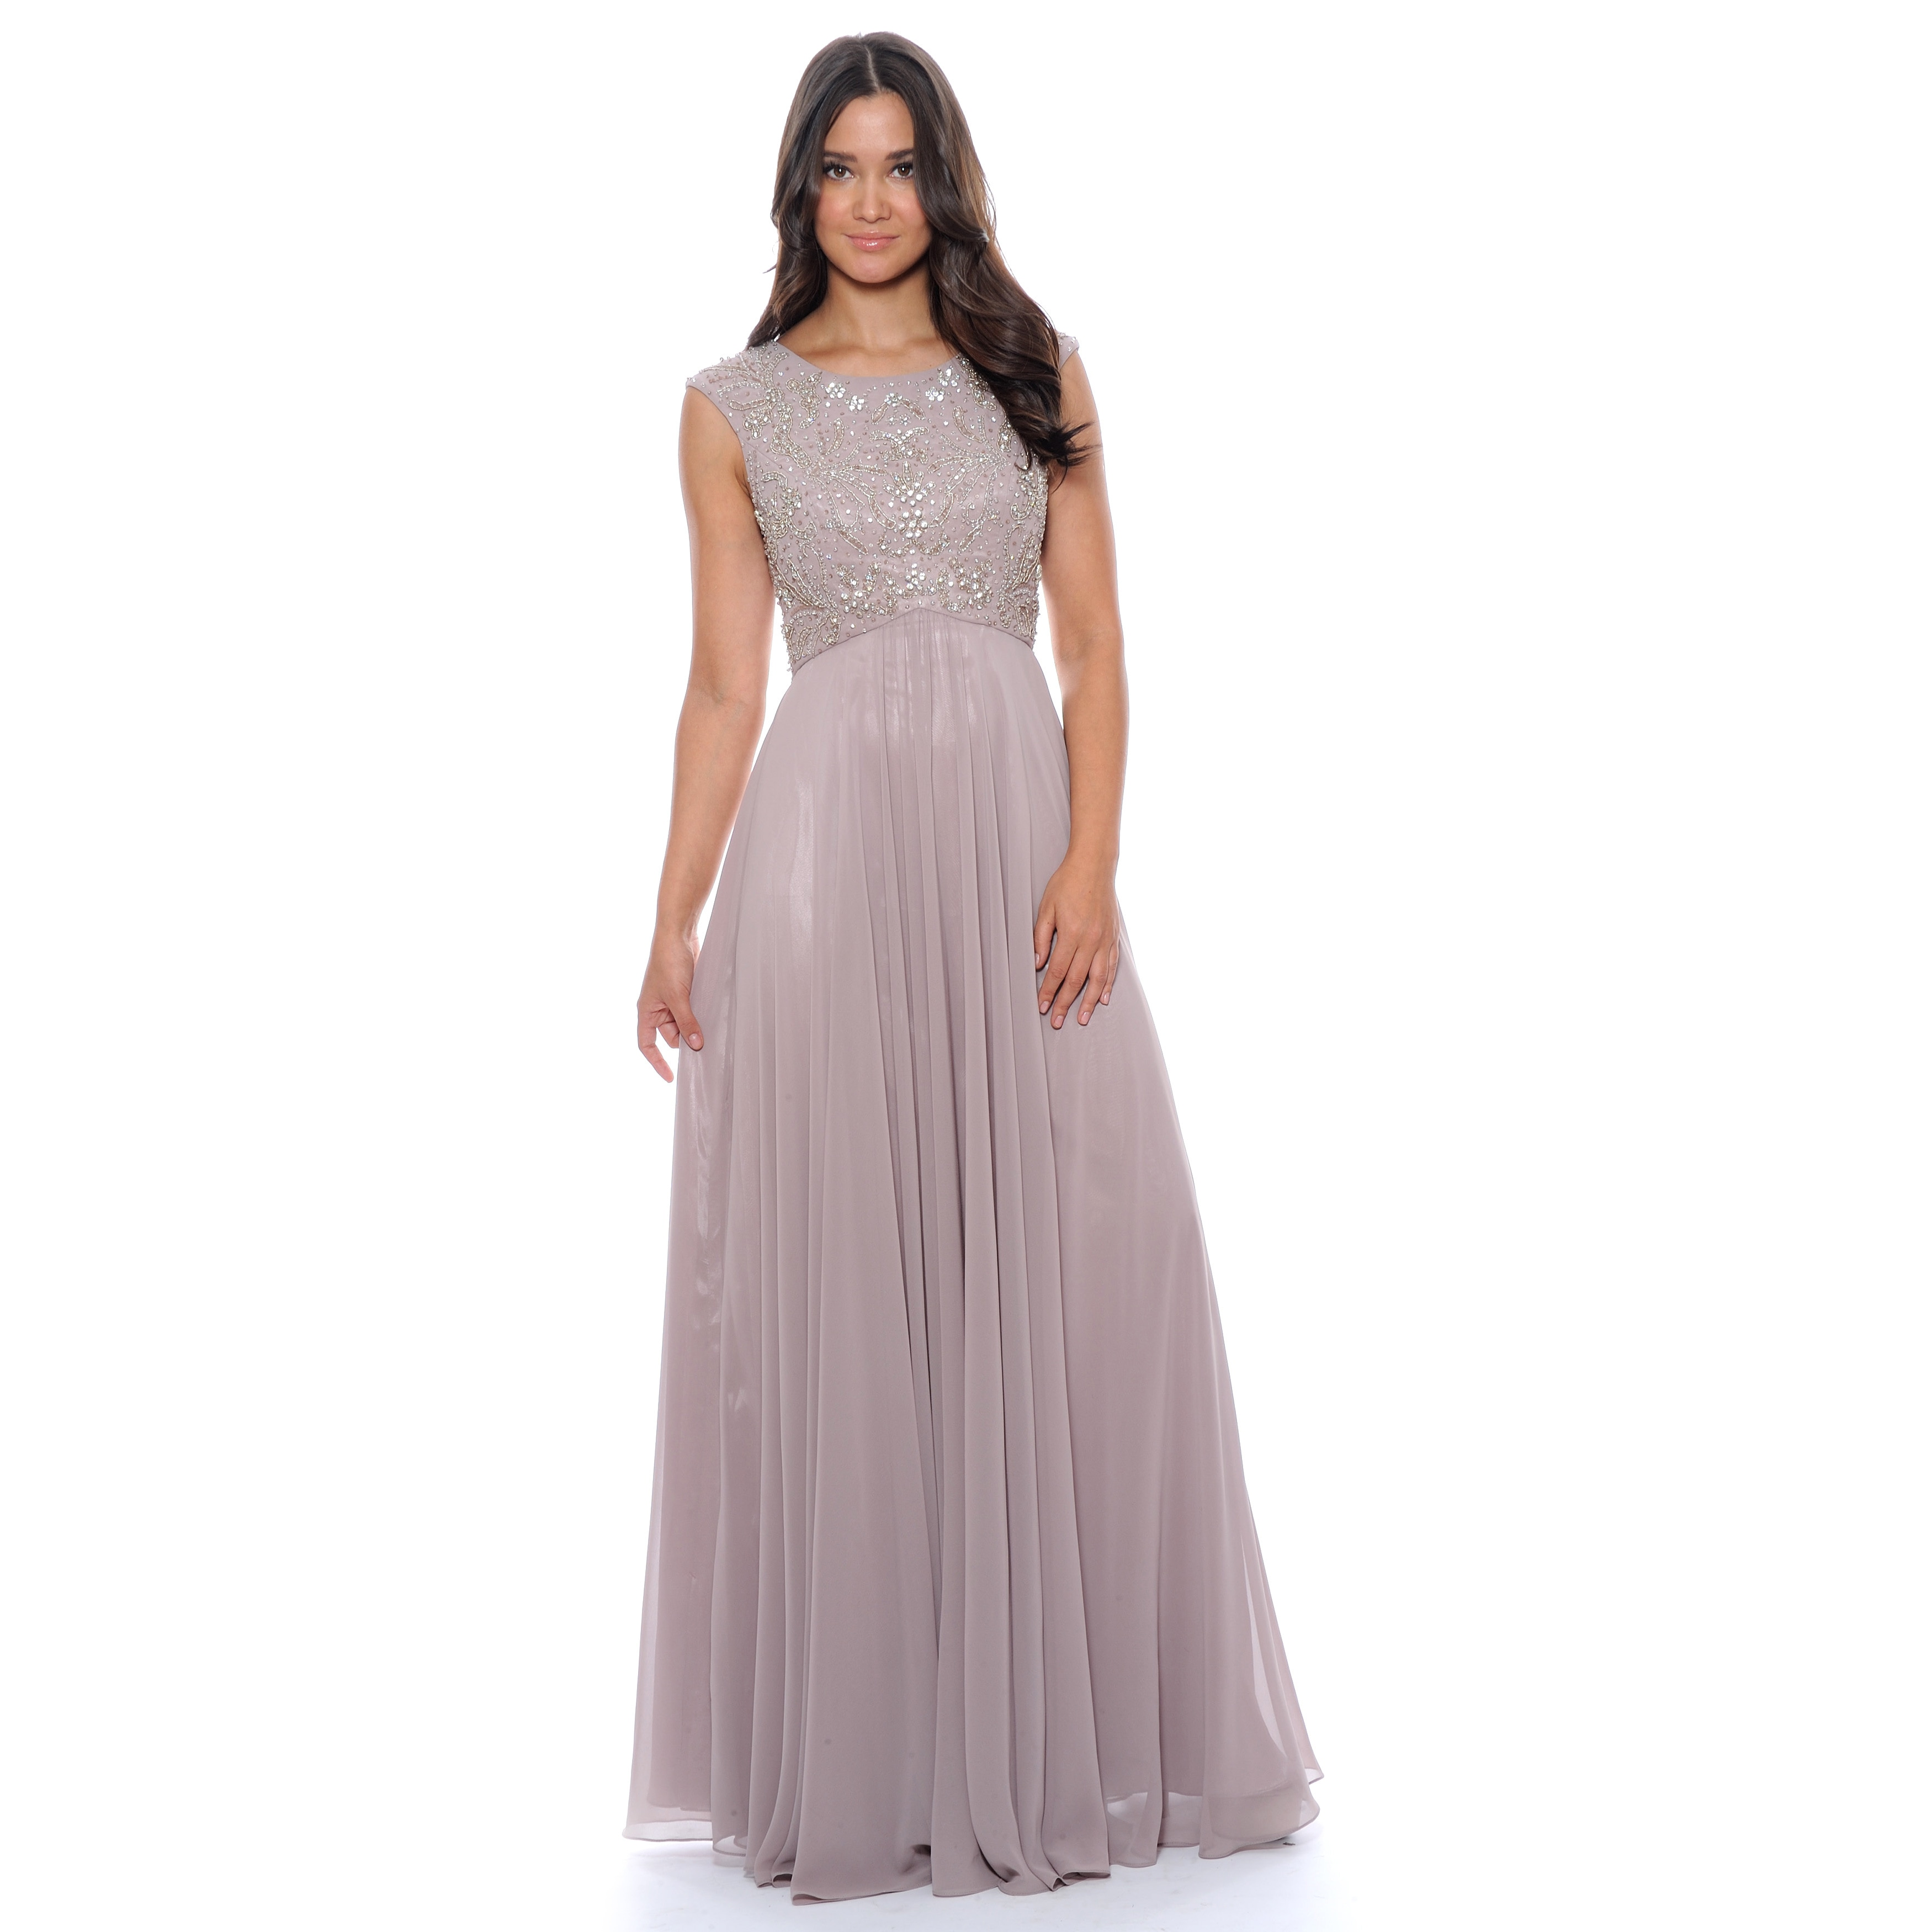 Shop Decode 1.8 Women\'s Mauve Beaded Empire Evening Gown - Free ...